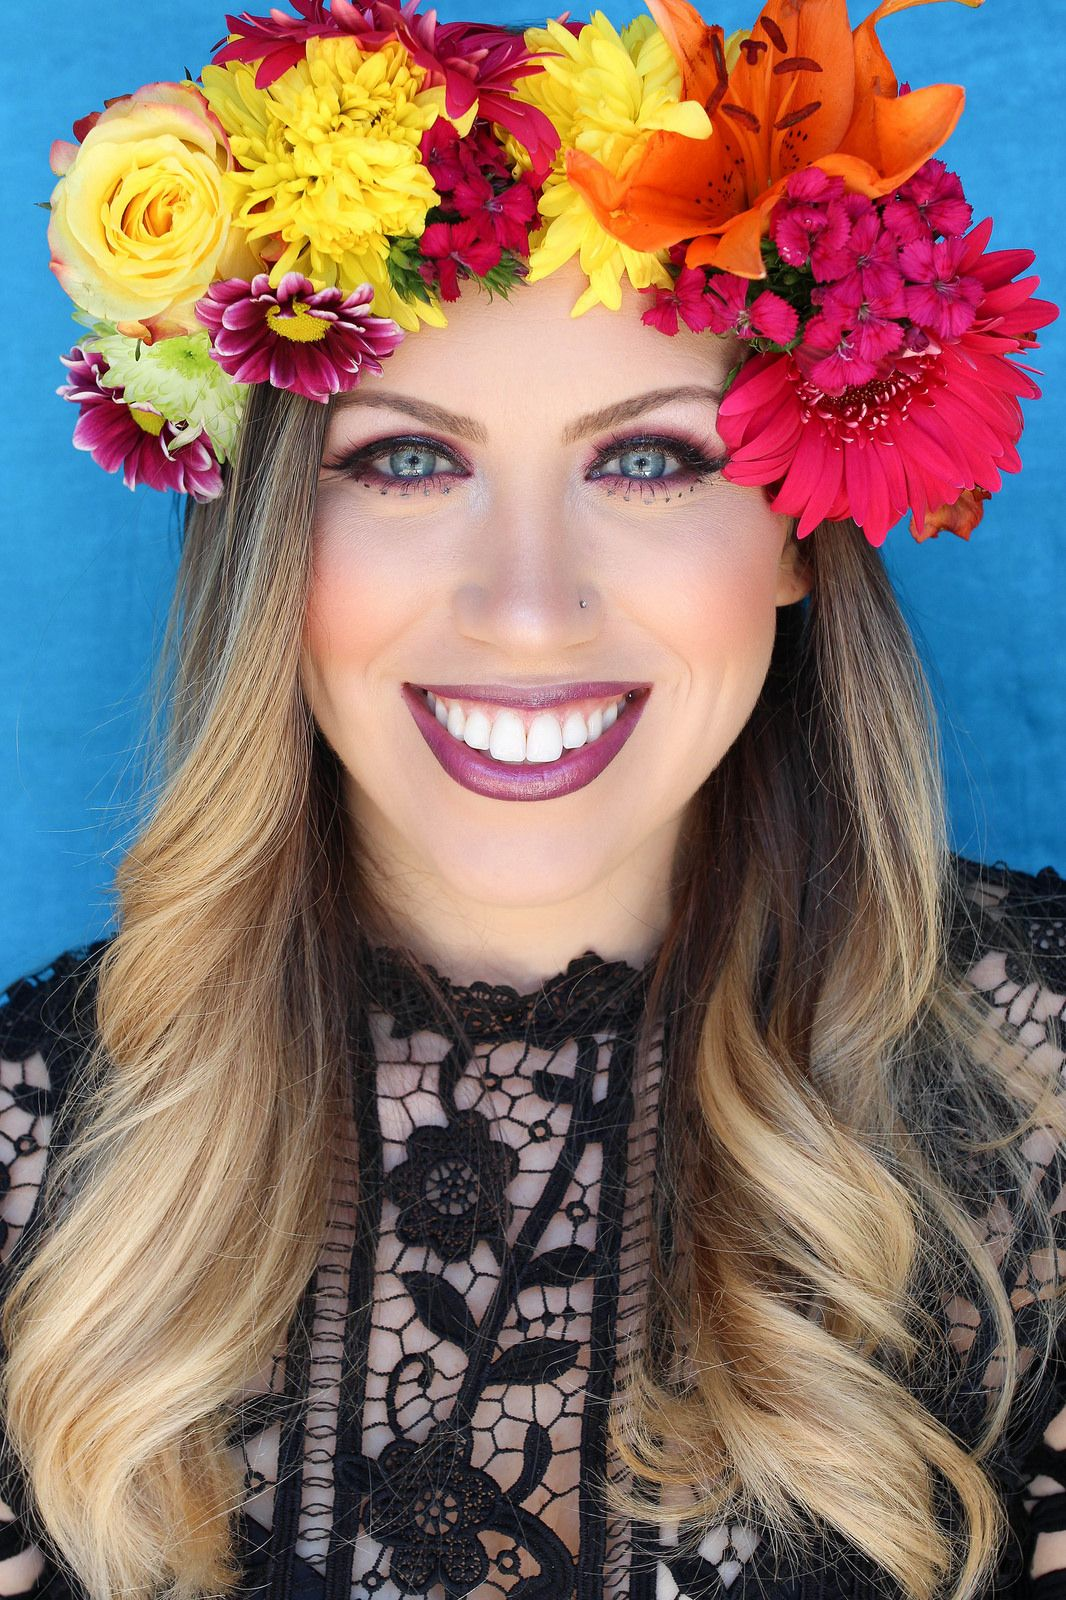 How to make a flower crown real flowers flower crowns and crown how to make a flower crown easy diy real flower crown festive style inspired makeup izmirmasajfo